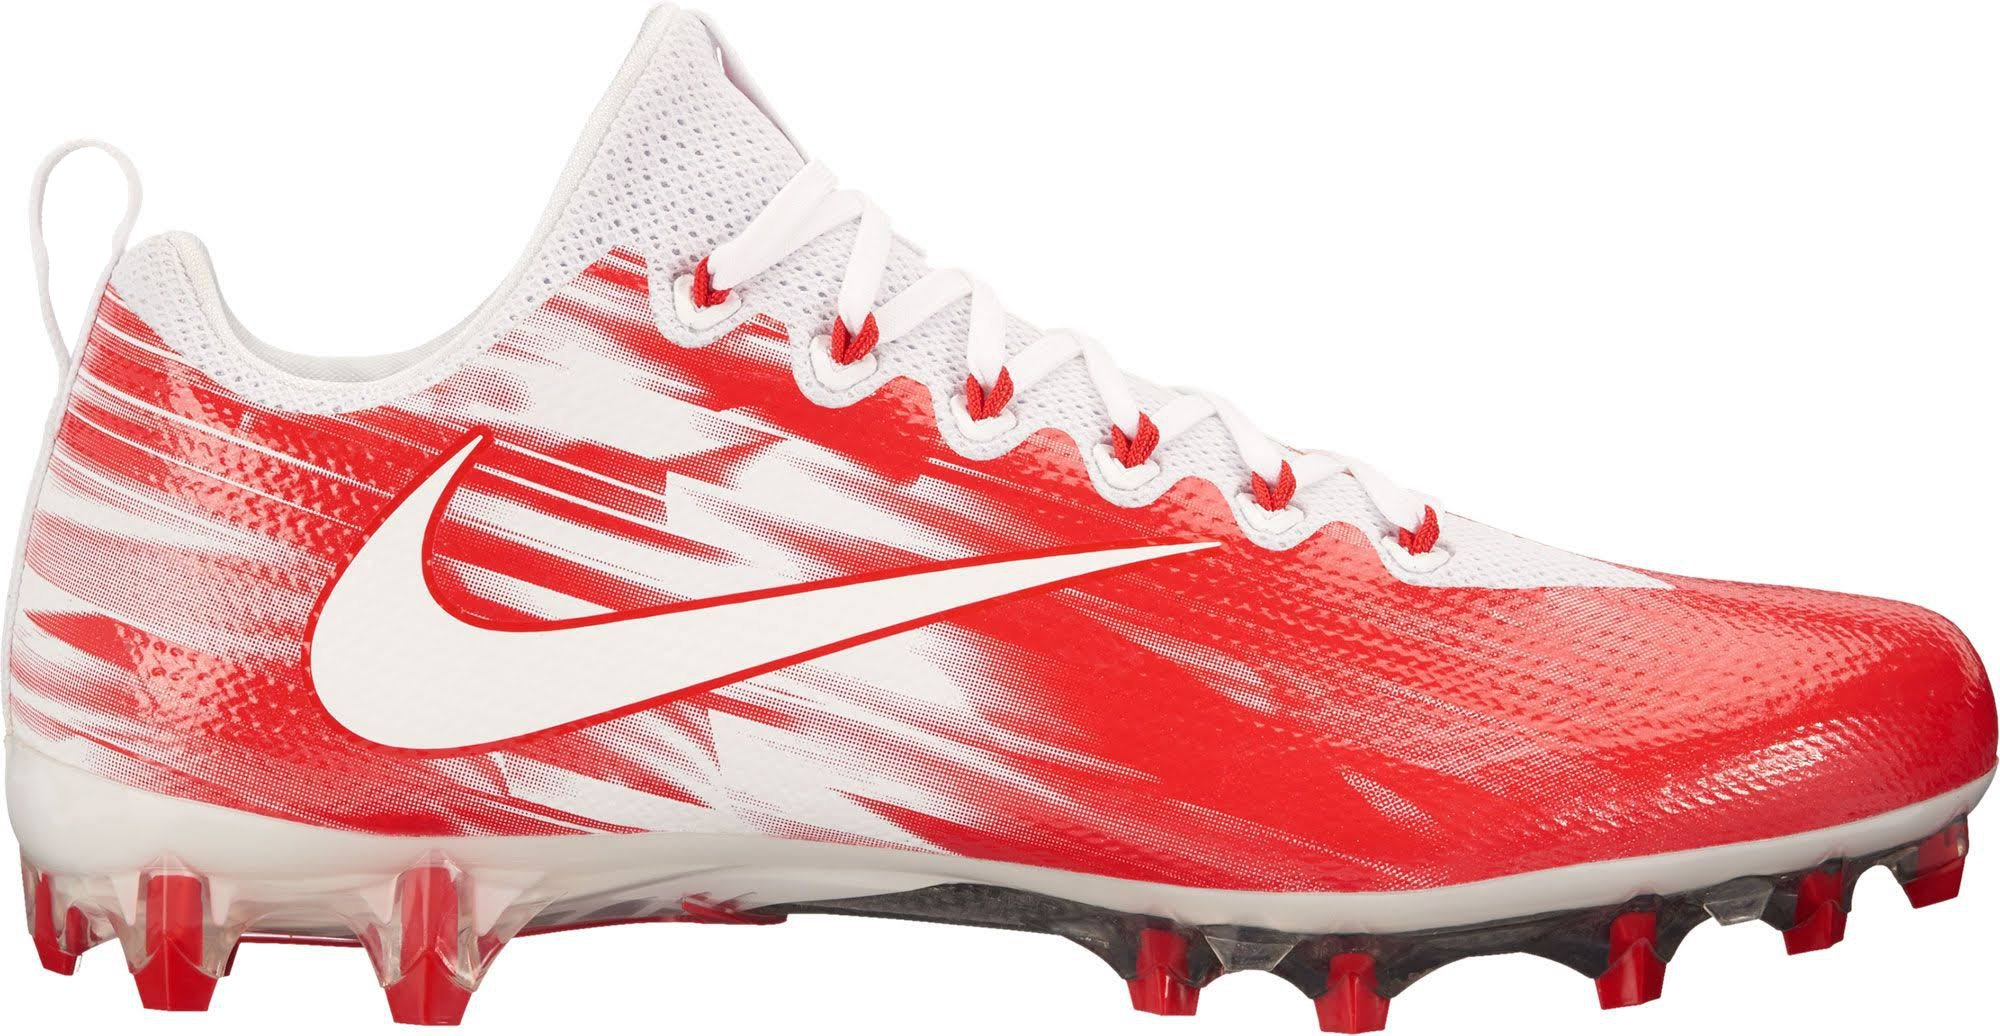 NIKE Men's Vapor Untouchable Pro Lacrosse Cleats (10, White/Red)